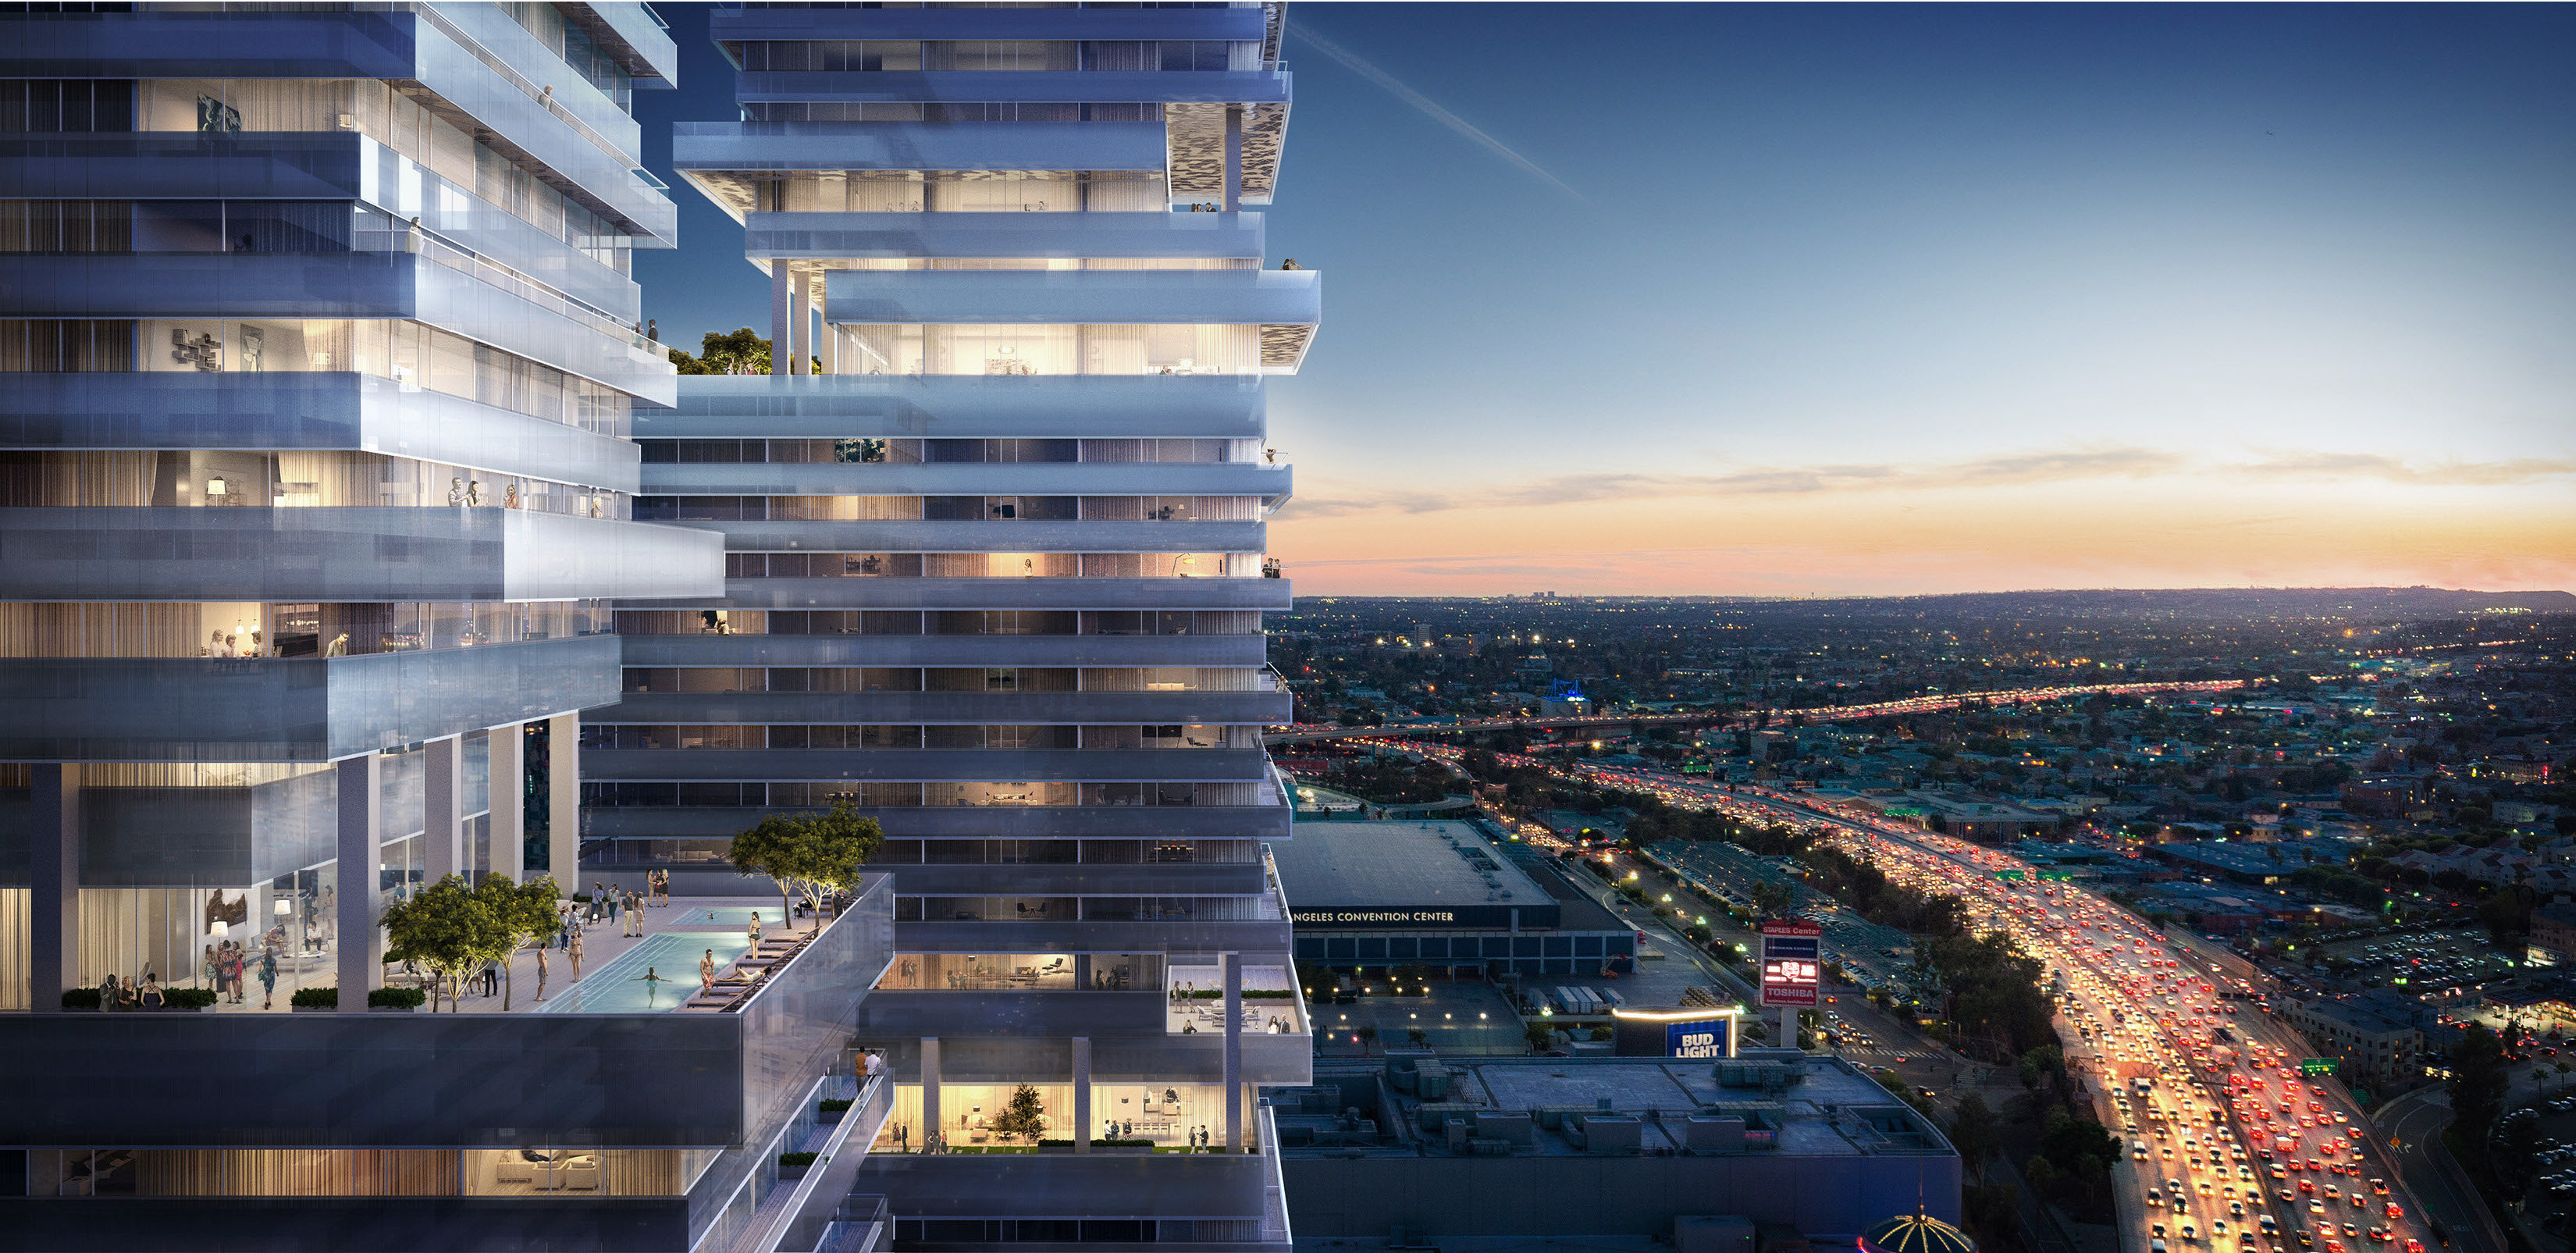 PATTERNS architecture high rise rendering night